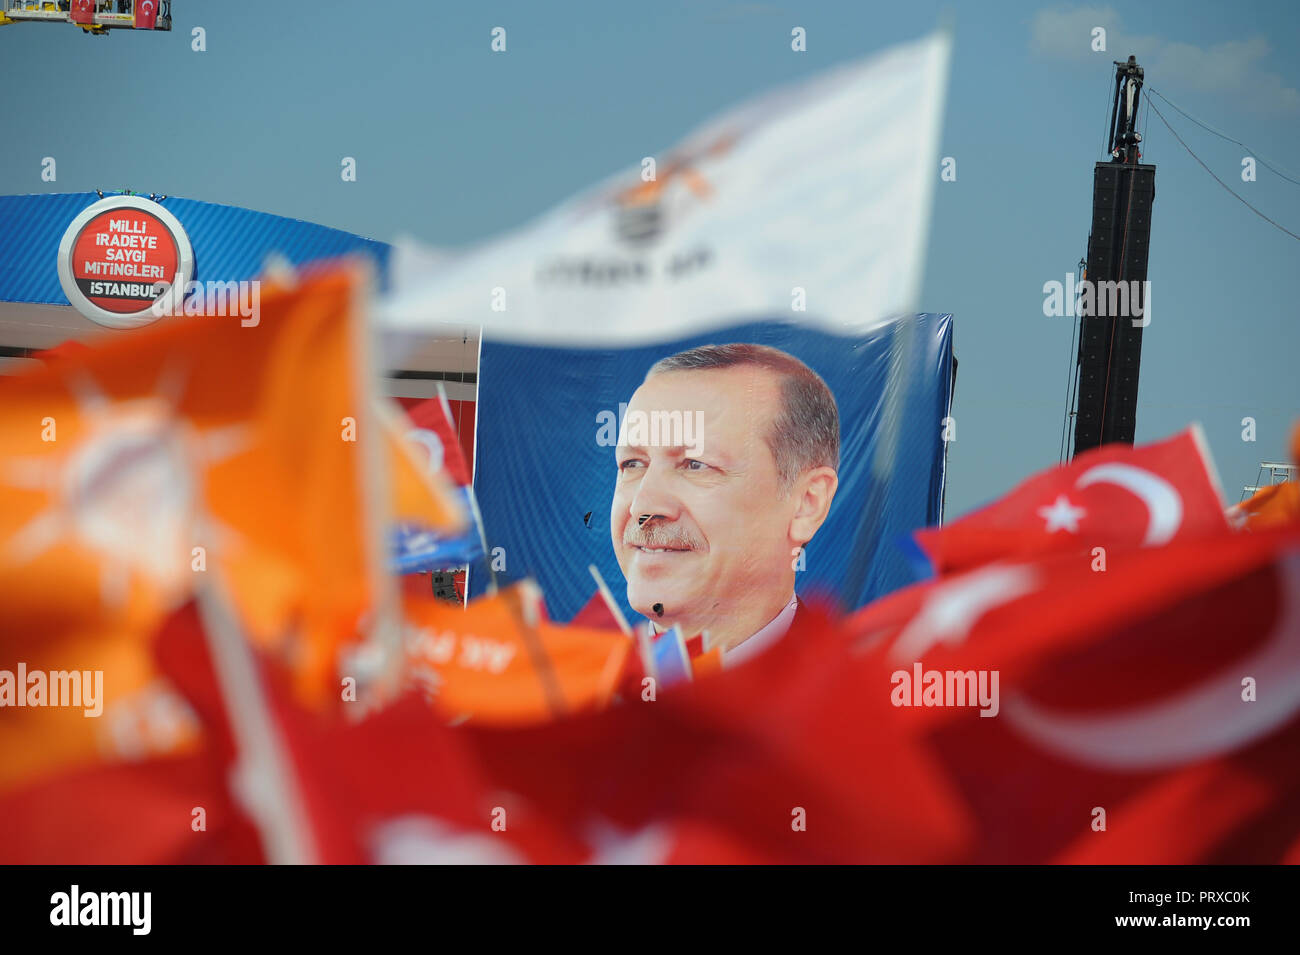 June 16, 2013 - Istanbul, Turkey: Supporters of Turkish Prime minister Recep Tayyip Erdogan attend a mass rally in Istanbul's Kazlicesme fair grounds to watch their leader speak a day after he ordered police to storm the Gezi Park protest camp. Rassemblement de masse de l'AKP, le parti du Premier ministre Recep Tayyip Erdogan, apres l'evacuation du parc Gezi. *** FRANCE OUT / NO SALES TO FRENCH MEDIA *** - Stock Image